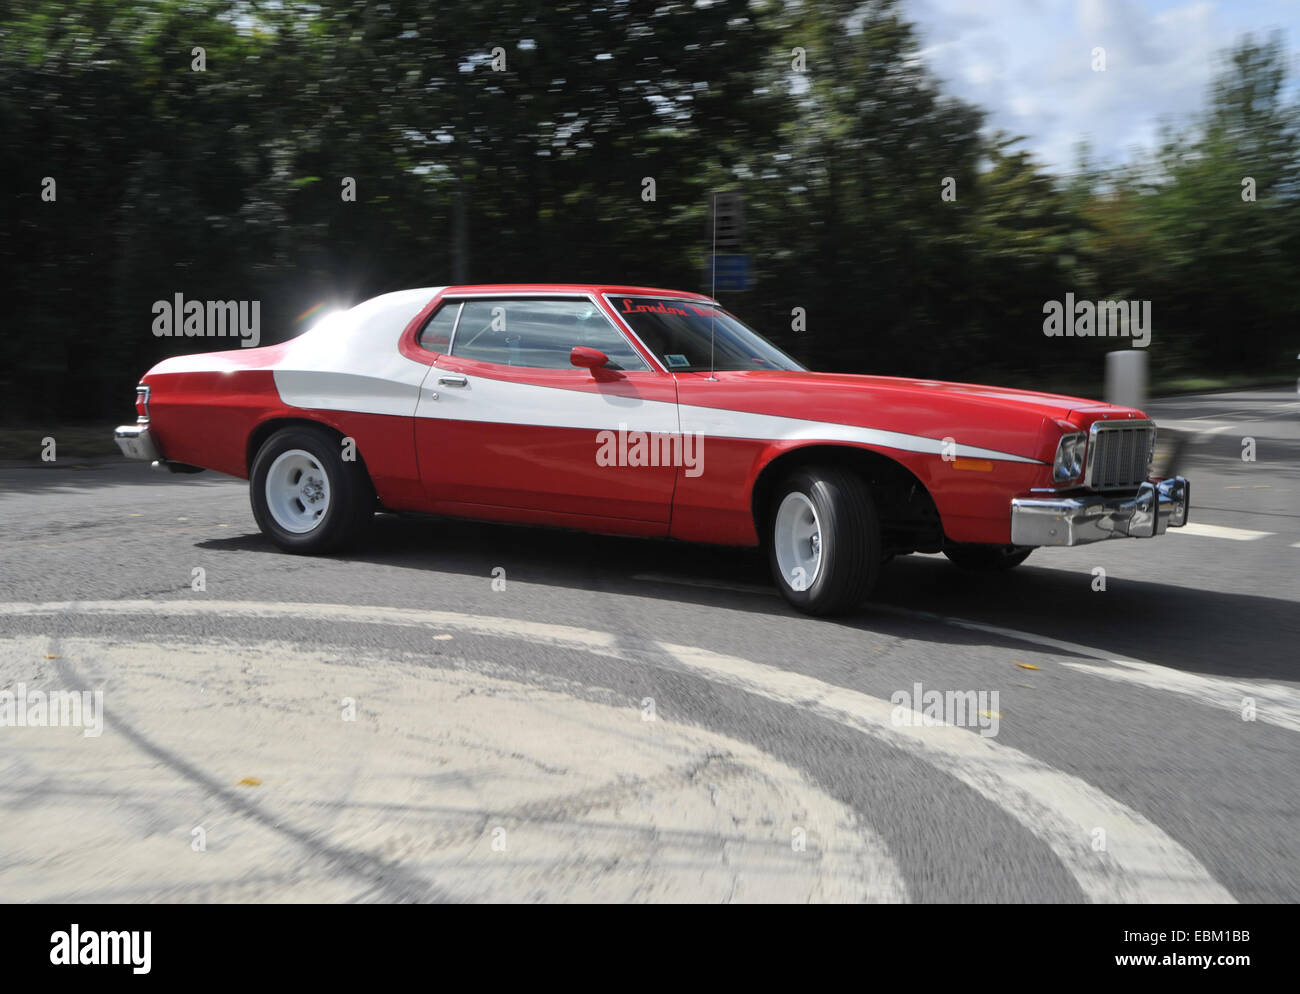 ford gran torino starsky and hutch replica car stockfoto lizenzfreies bild 76042831 alamy. Black Bedroom Furniture Sets. Home Design Ideas